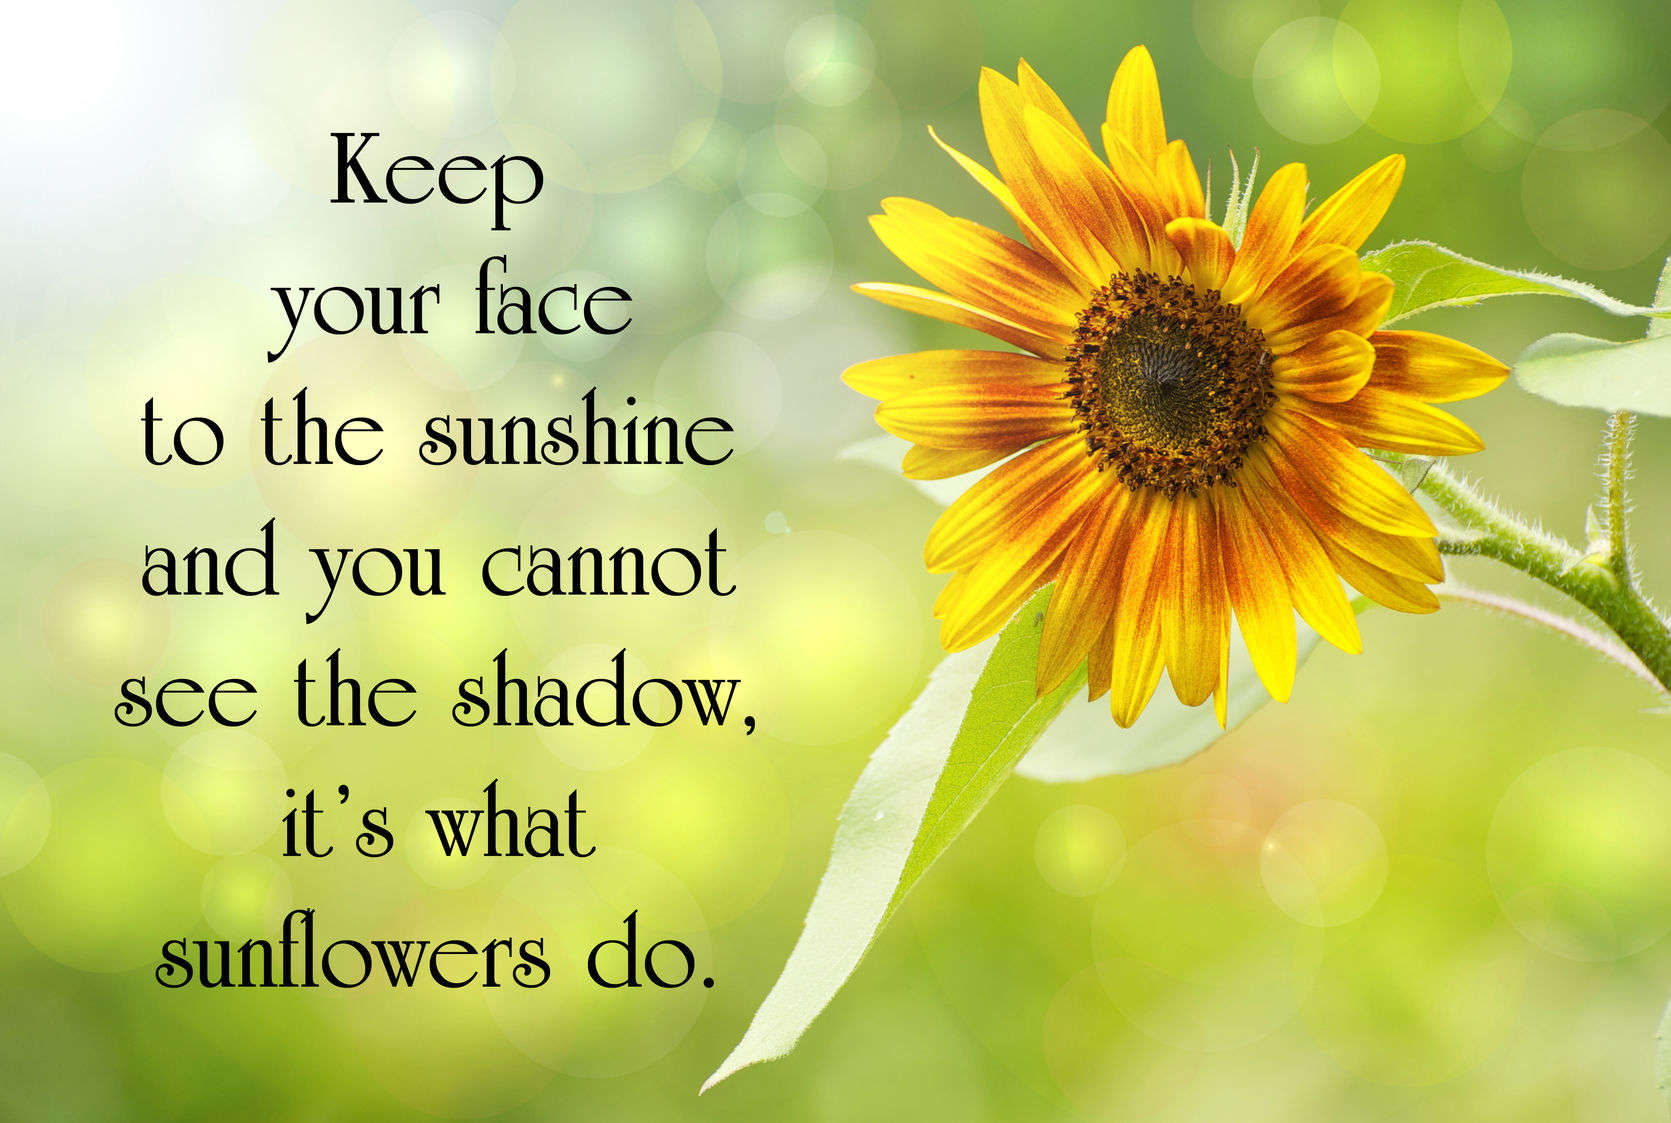 Keep your face to the sunshine and you cannon see the shadow, it's what sunflowers do.